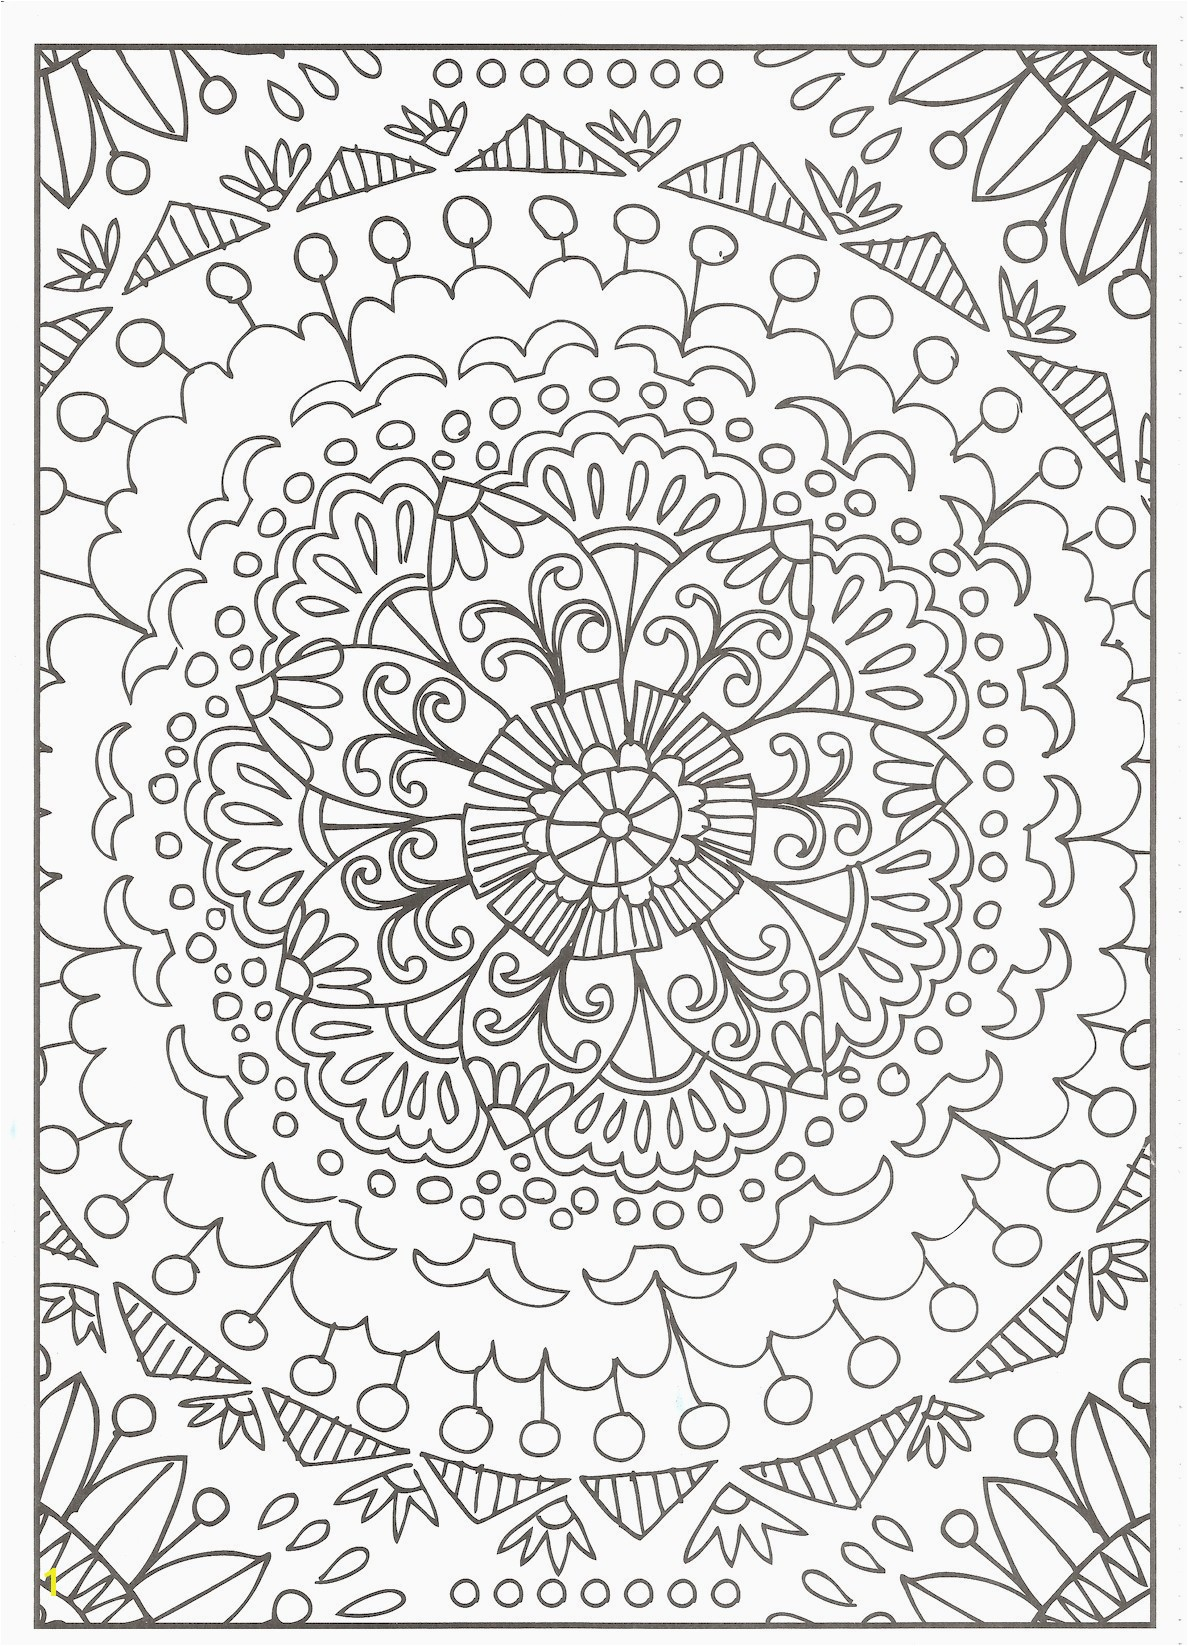 Peace Coloring Sheets Printable Fresh Celestial Seasonings Coloring Pages Inspirational Peace Coloring